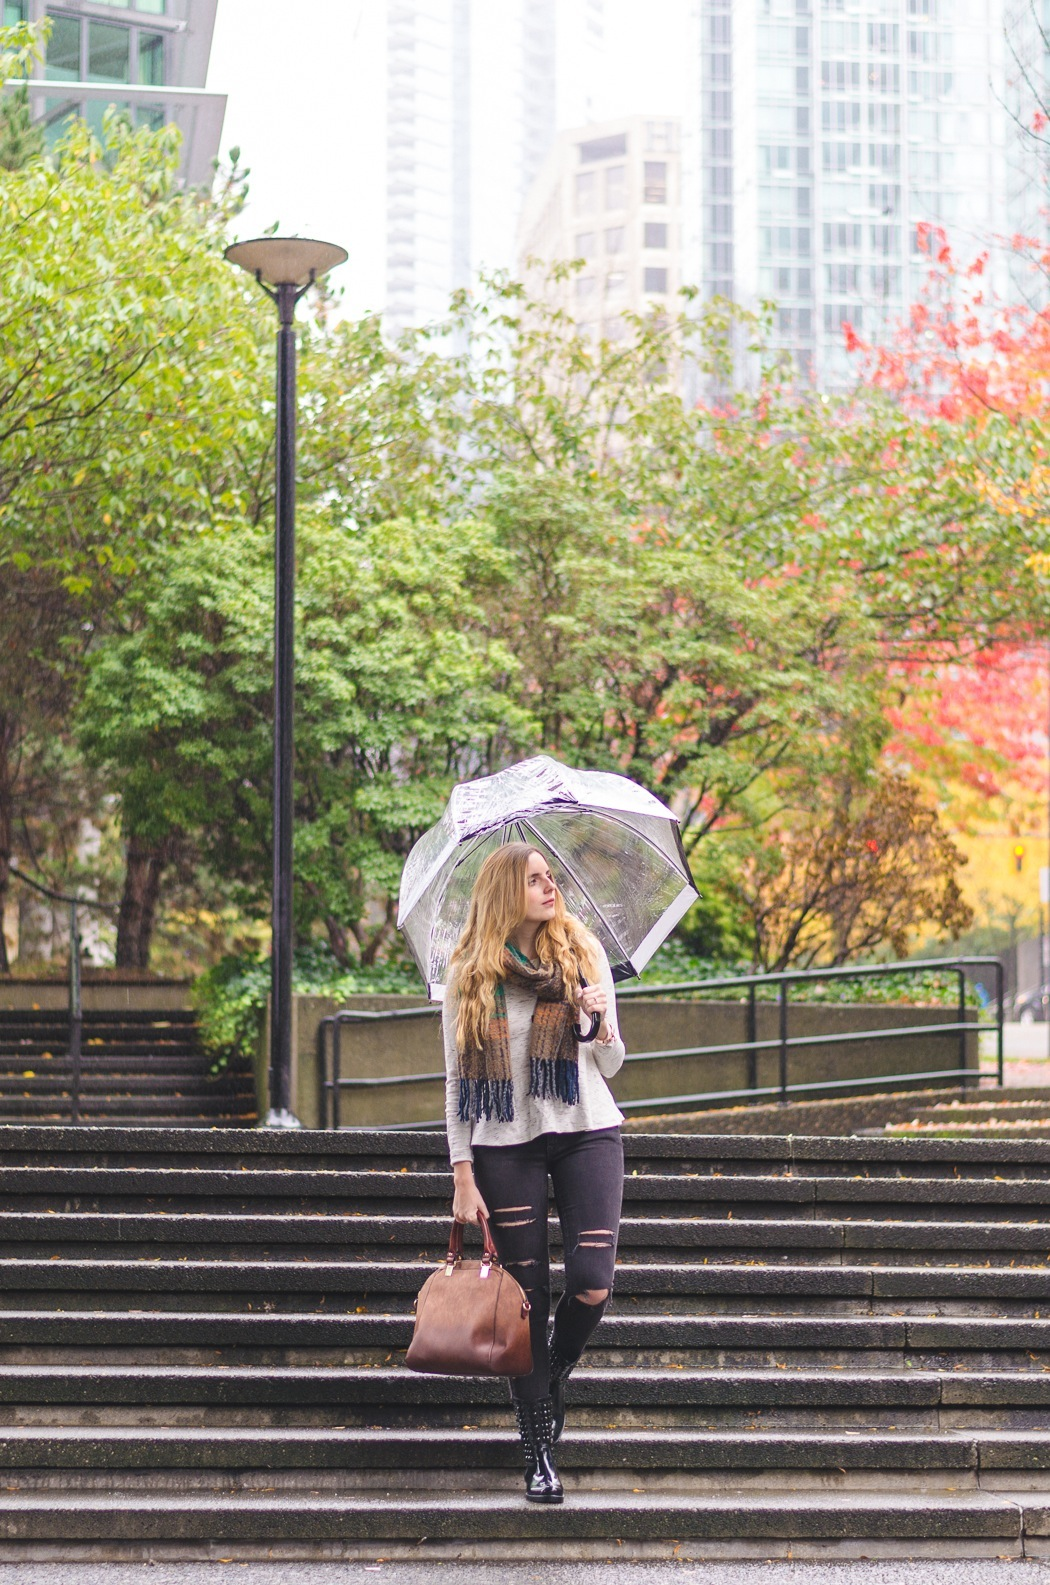 A guide on how to look stylish while also dressing practically for a rainy day